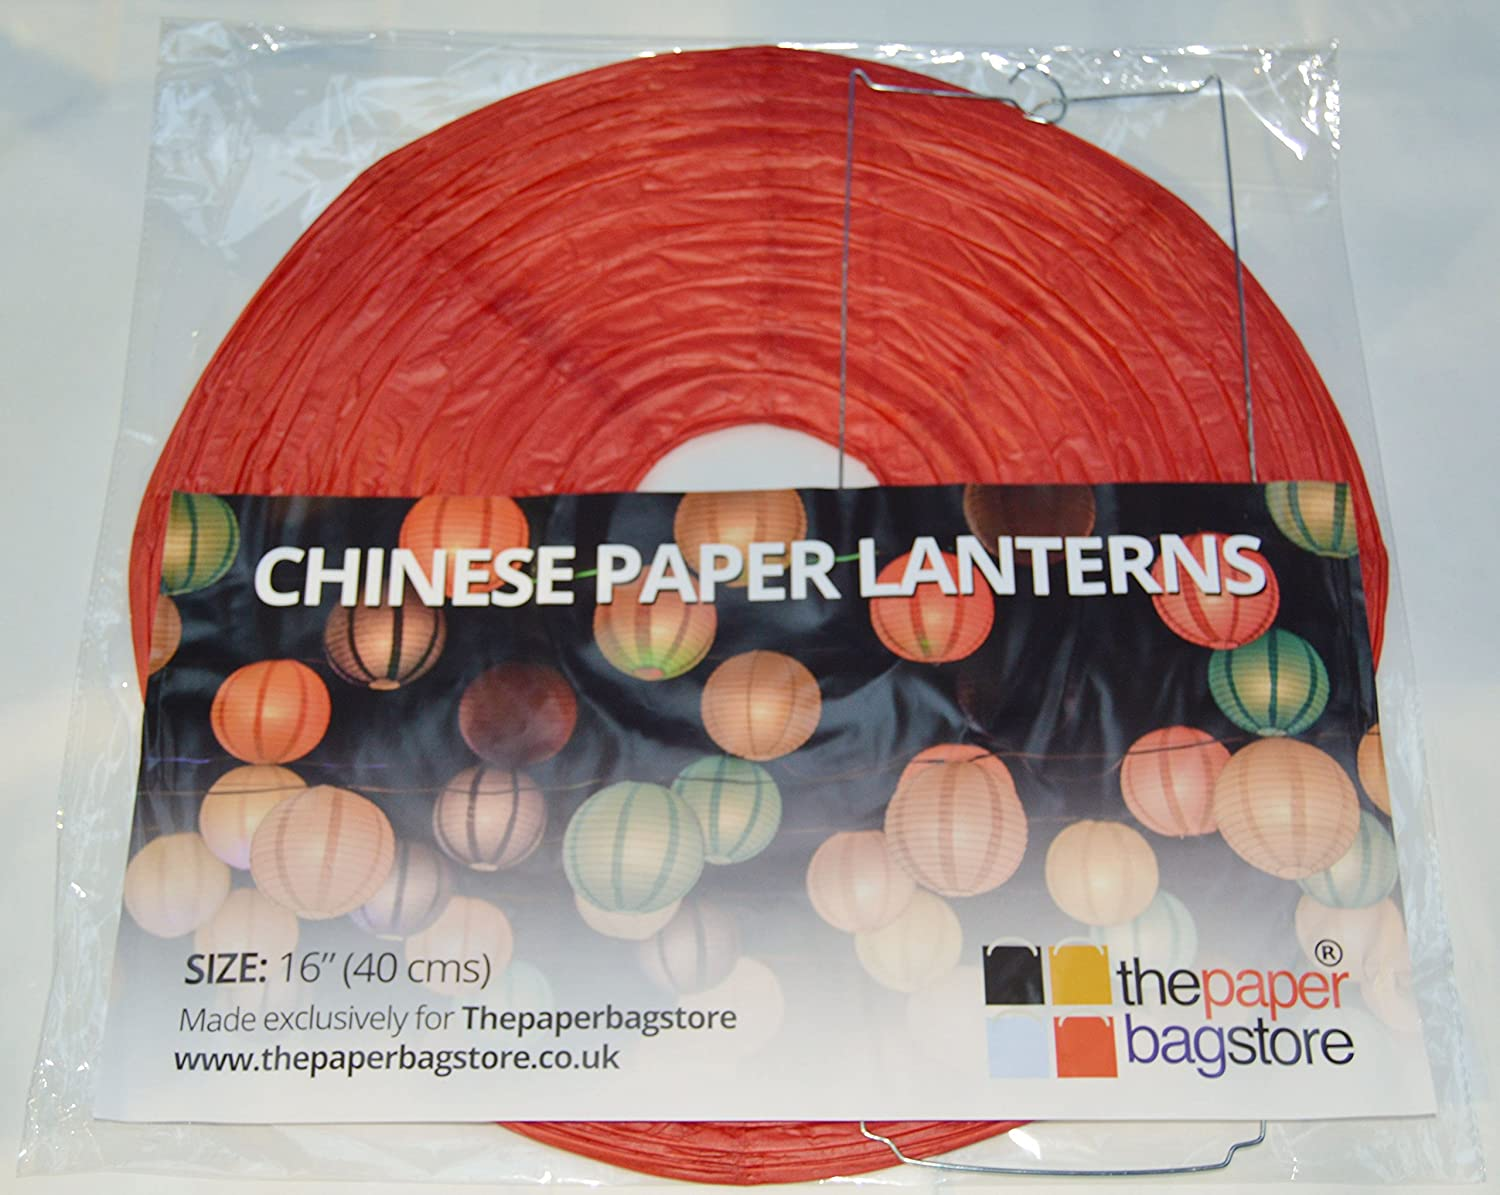 Thepaperbagstore 12 Yellow Chinese Paper Lanterns for Events or Lampshades 20.32cm Small 8